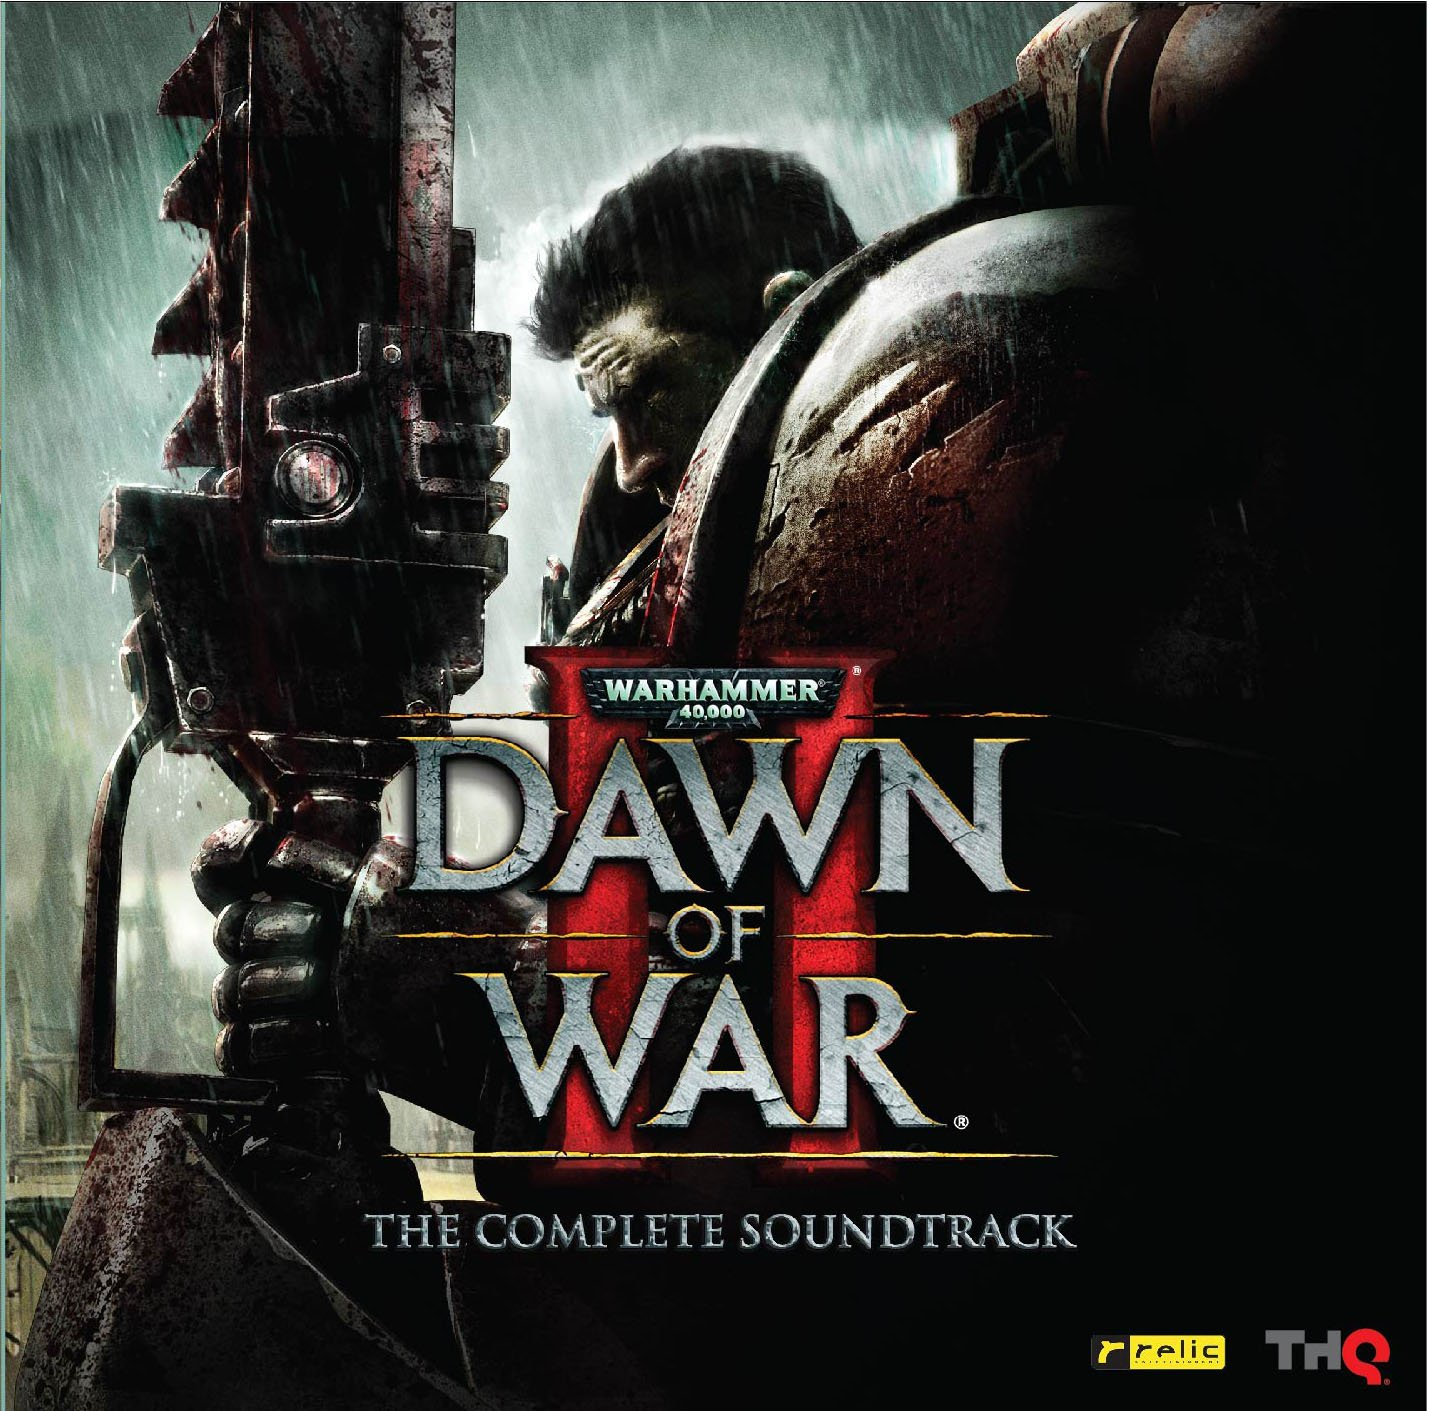 http://www.game-ost.com/static/covers_soundtracks/4/9/4973_12396.jpg